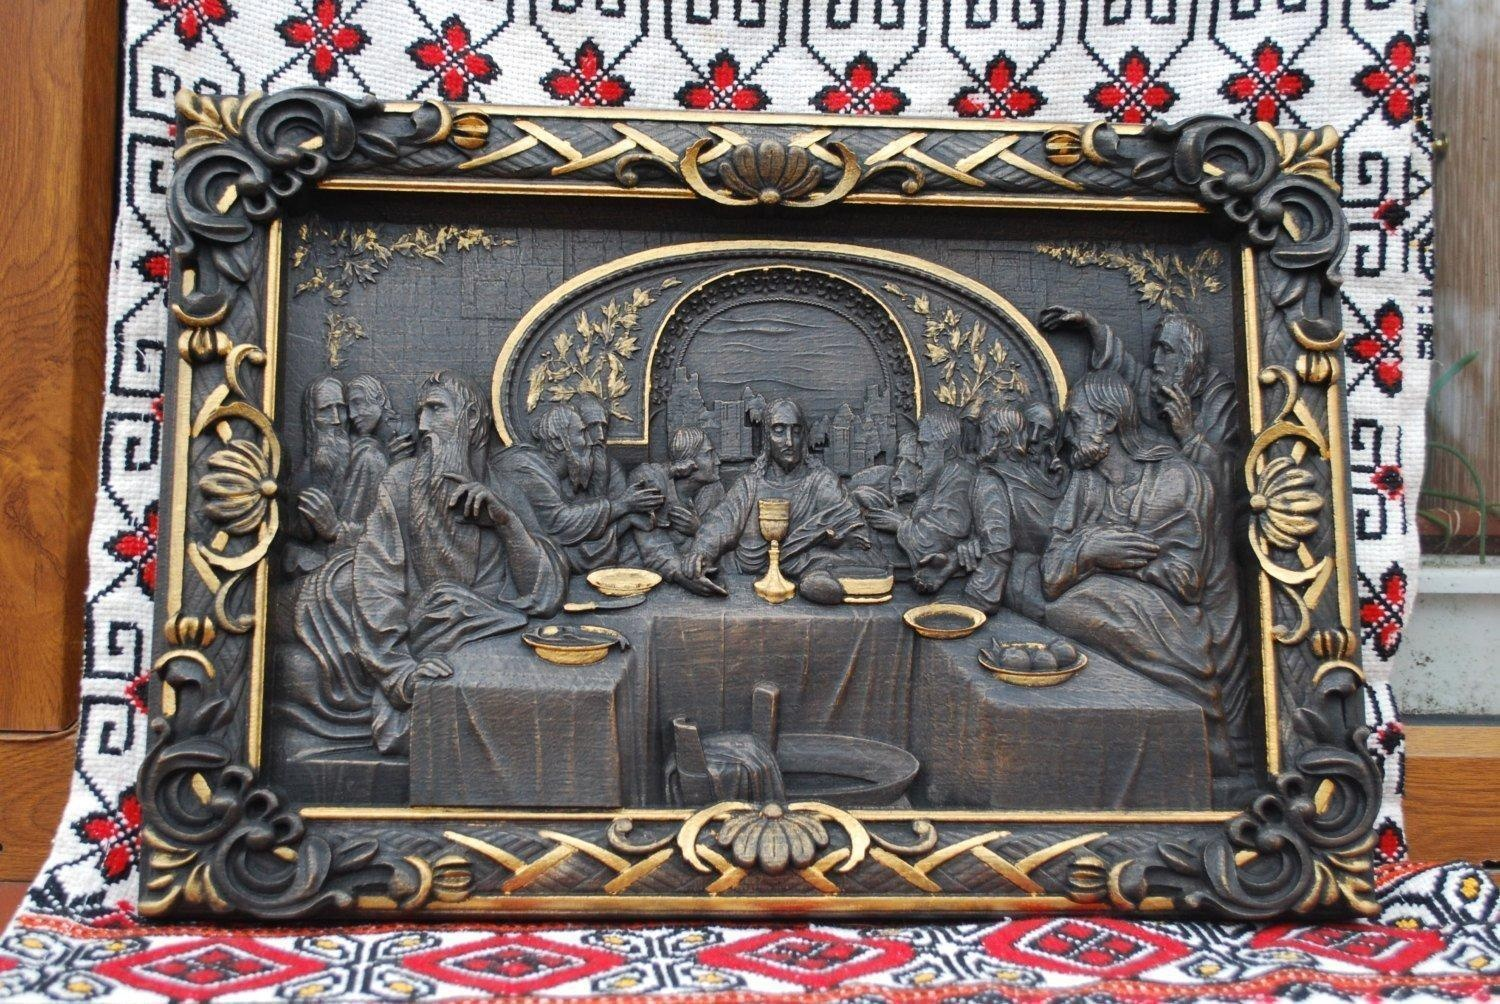 Dark Last Supper Durable Unique christian gift Wood Carved religious wall art FREE ENGRAVING FREE SHIPPING